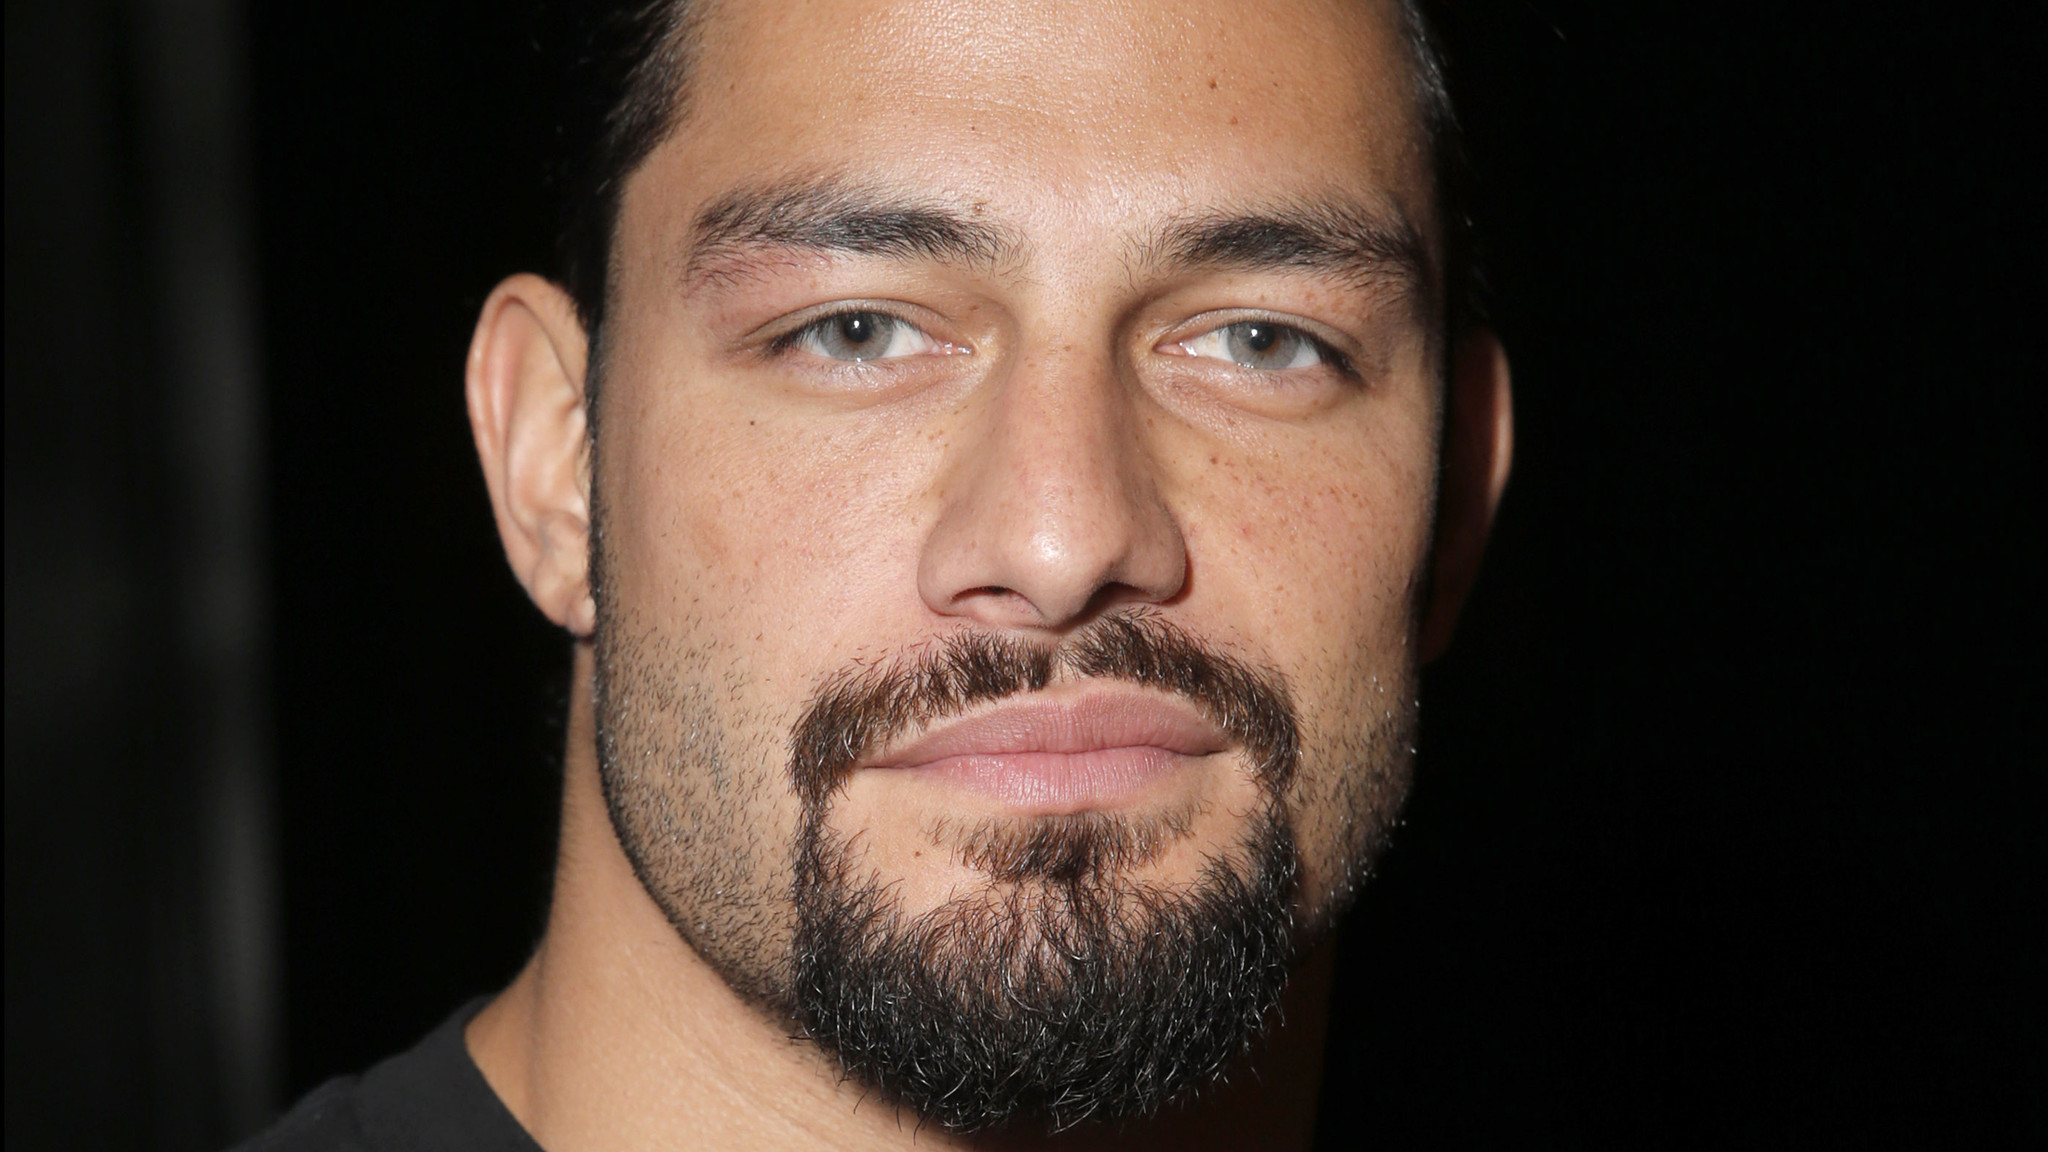 Roman Reigns Path Continues To Be Muddled Baltimore Sun